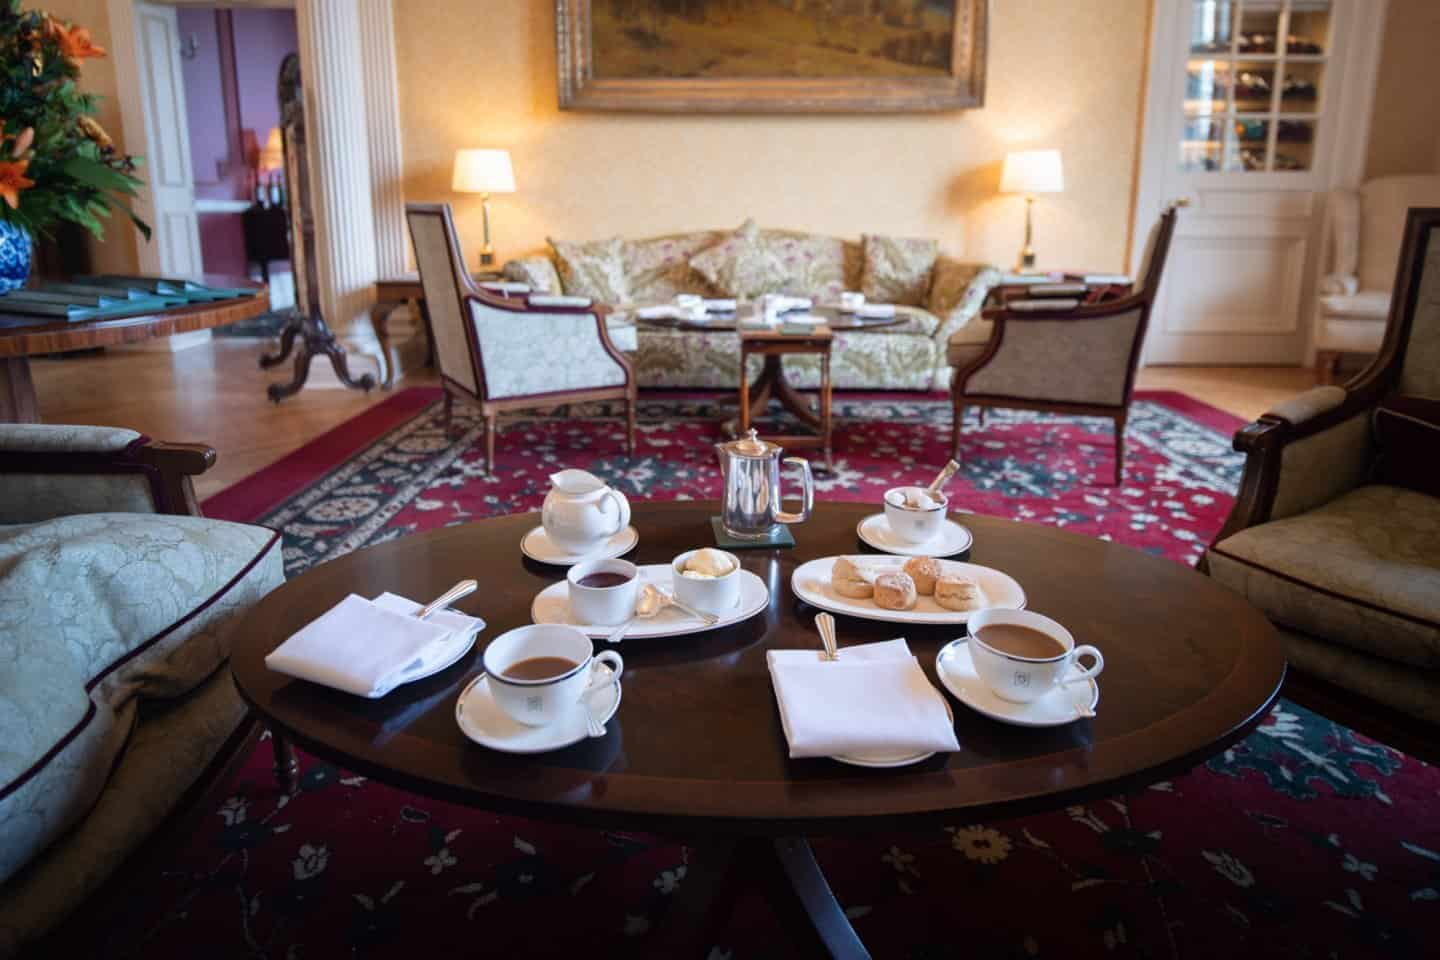 Cream tea in the warm, cozy drawing-room at Glenapp Castle